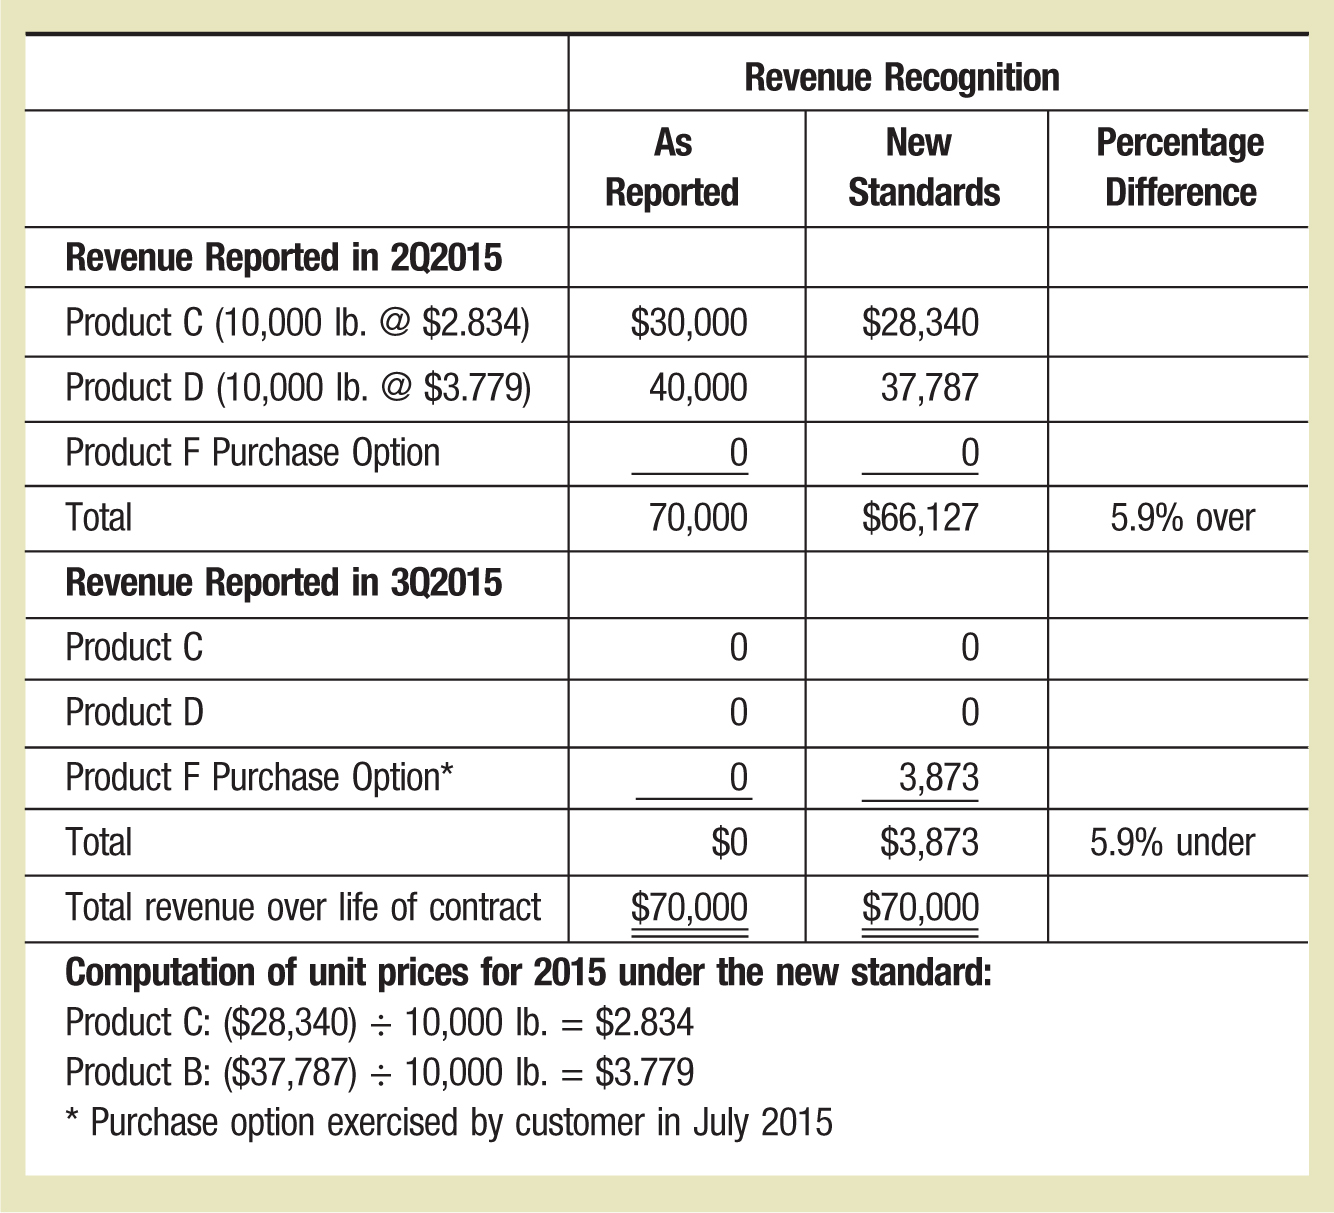 Revenue Recognition As Reported New Standards Percentage Difference Revenue Reported in 2Q2015 Product C (10,000 lb. @ $2.834) $30,000 $28,340 Product D (10,000 lb. @ $3.779) 40,000 37,787 Product F Purchase Option 0 0 Total 70,000 $66,127 5.9% over Revenue Reported in 3Q2015 Product C 0 0 Product D 0 0 Product F Purchase Option* 0 3,873 Total $0 $3,873 5.9% under Total revenue over life of contract $70,000 $70,000 Computation of unit prices for 2015 under the new standard: Product C: ($28,340) ÷ 10,000 lb. = $2.834 Product B: ($37,787) ÷ 10,000 lb. = $3.779 * Purchase option exercised by customer in July 2015